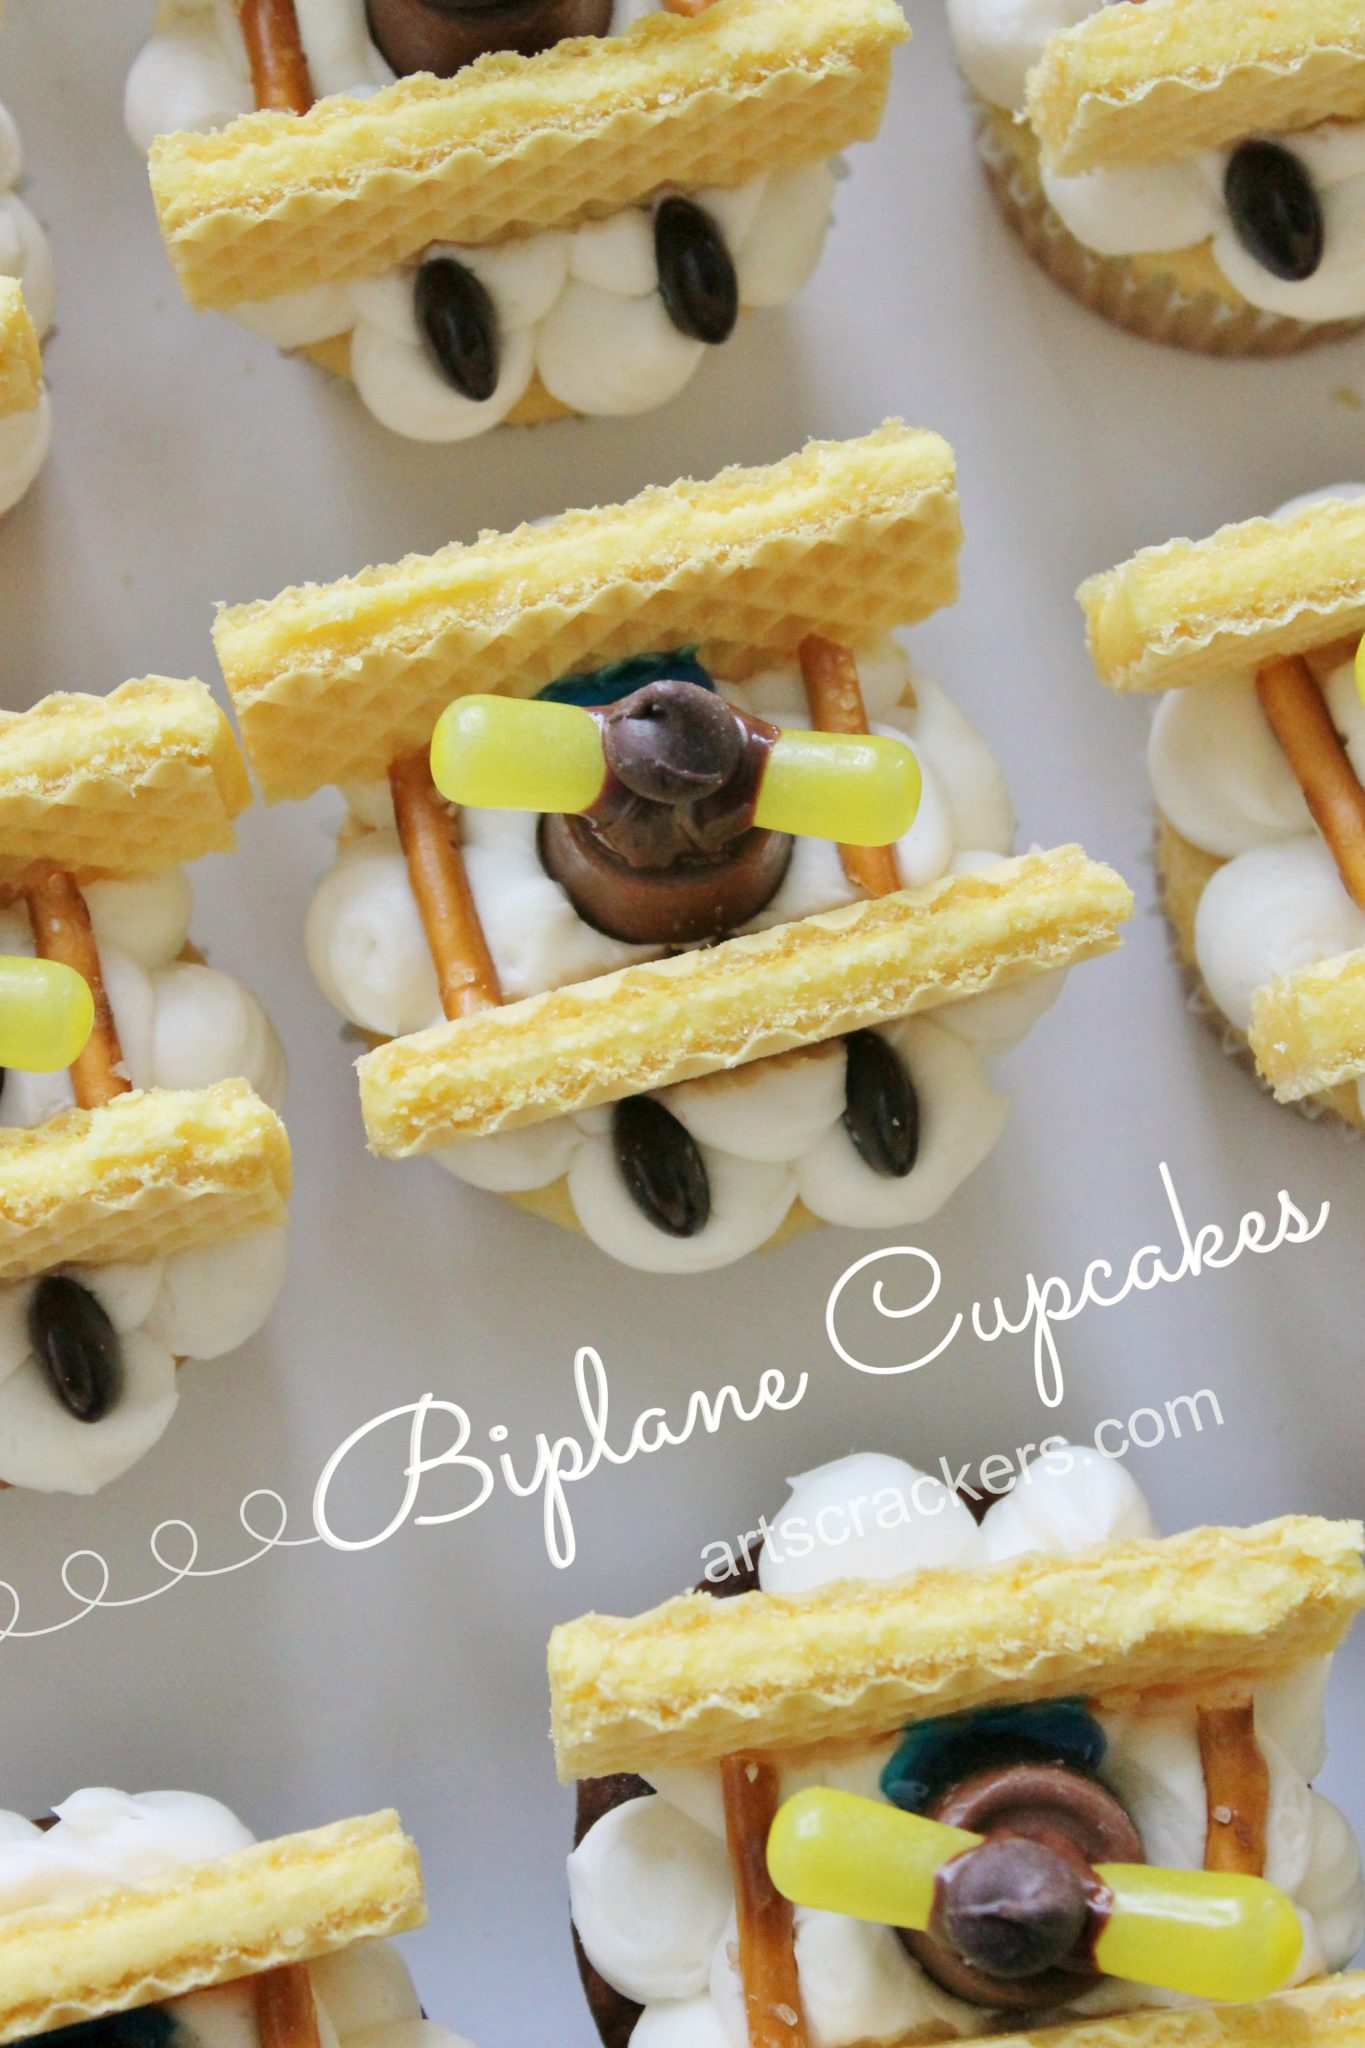 Biplane Inspired Cupcakes Decorating Tutorial. Click on the photo to view the step-by-step tutorial.